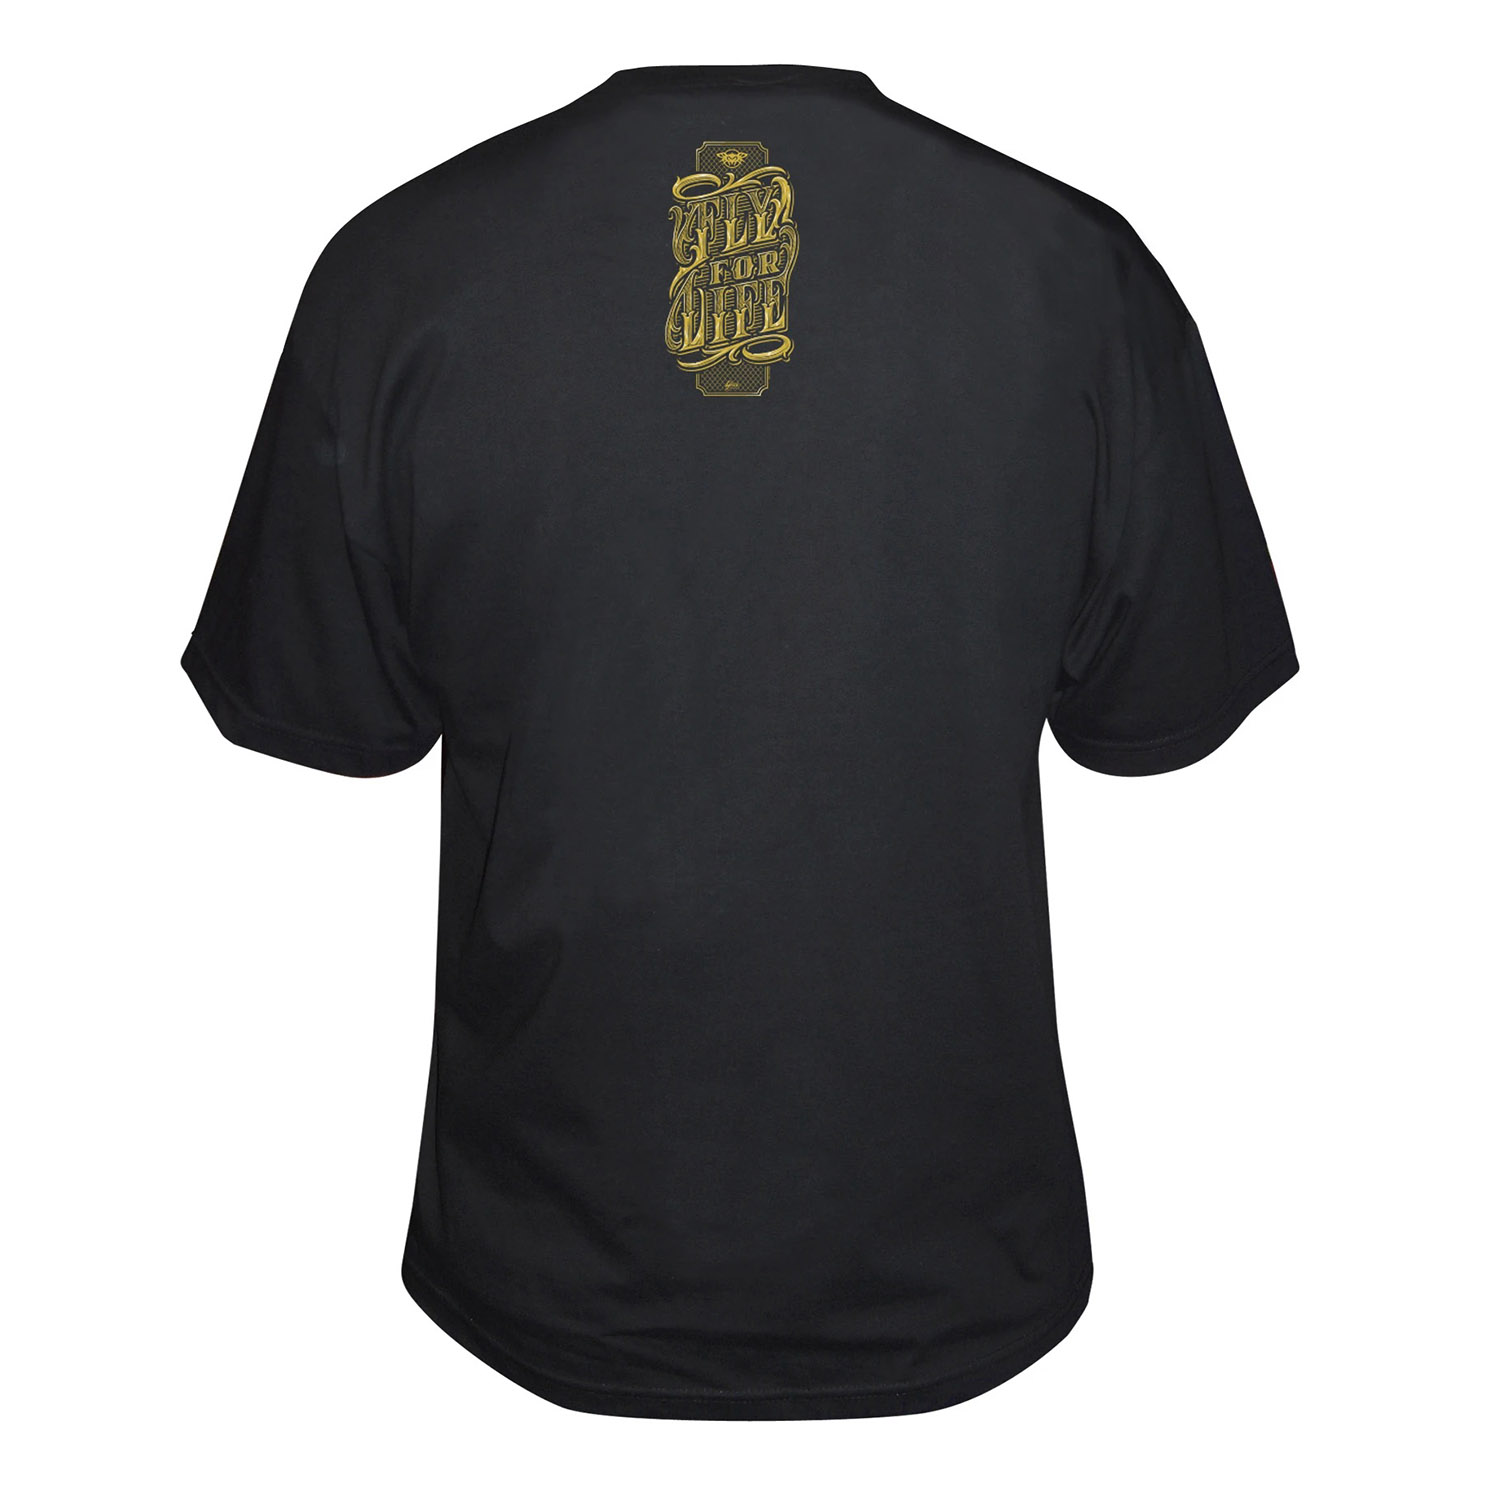 GOLD LIFE S/S T-SHIRTS